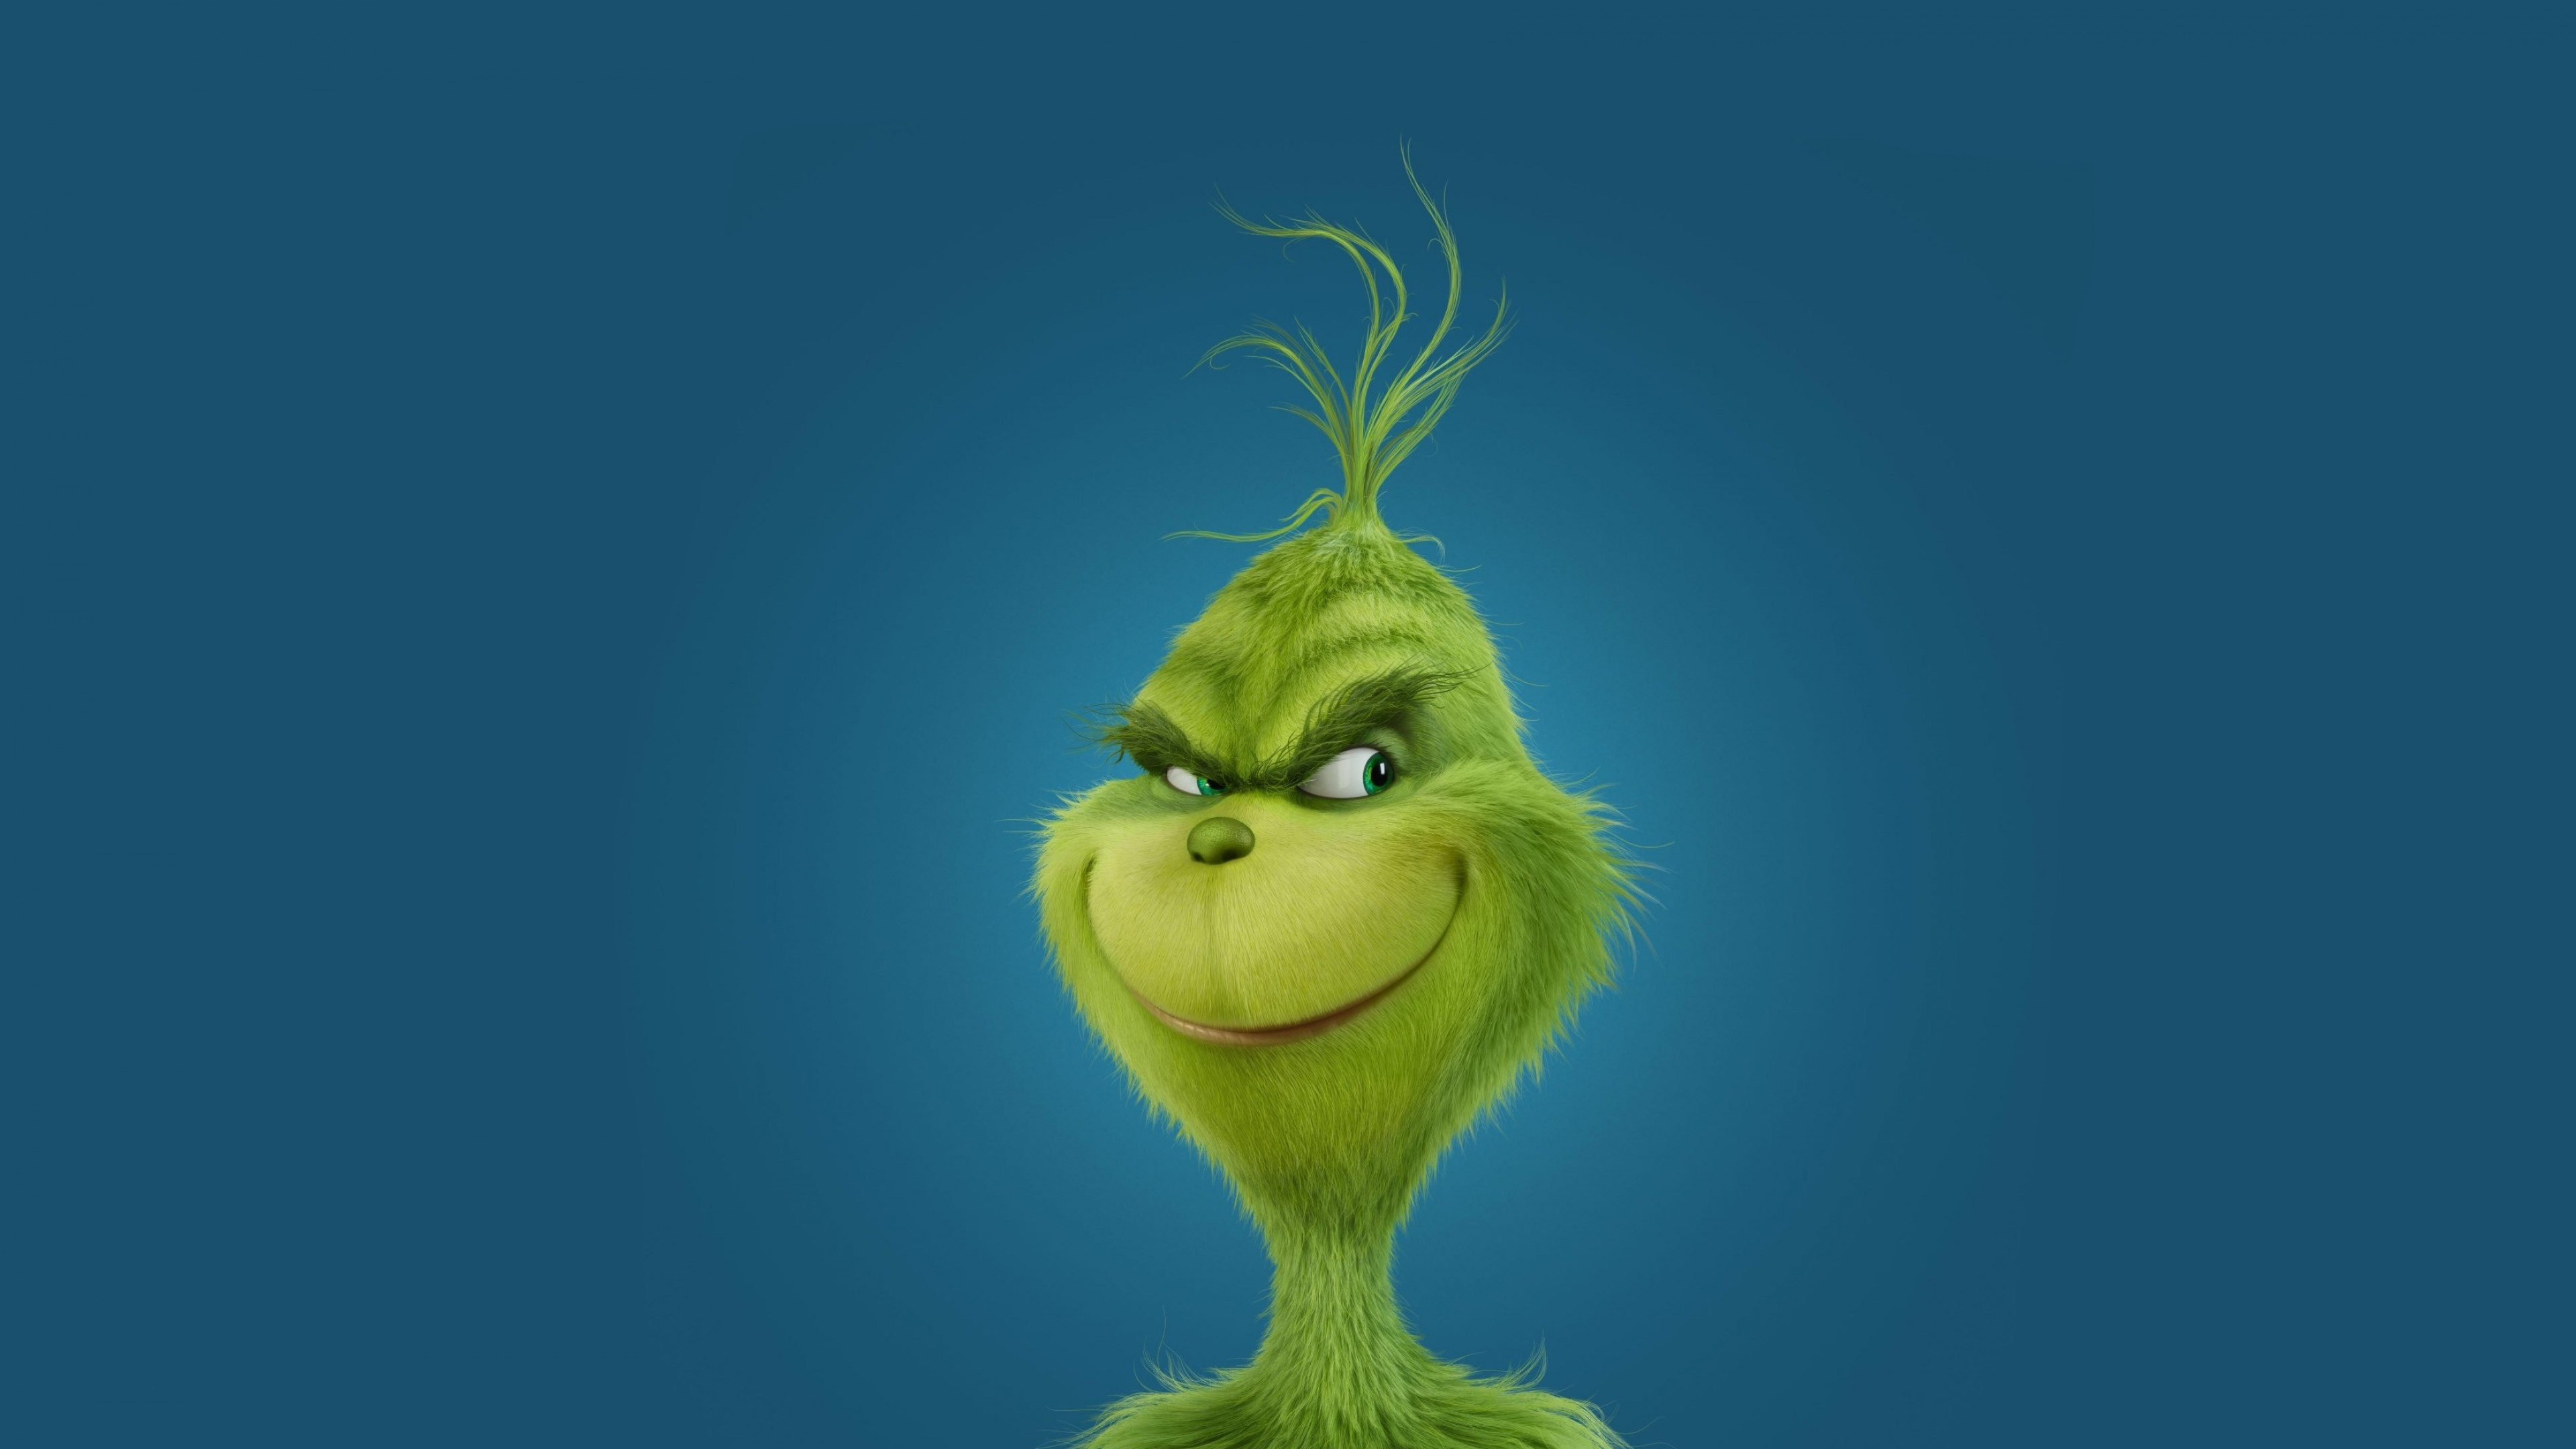 Universal Animal Wallpaper Wallpaper How The Grinch Stole Christmas Grinch Green